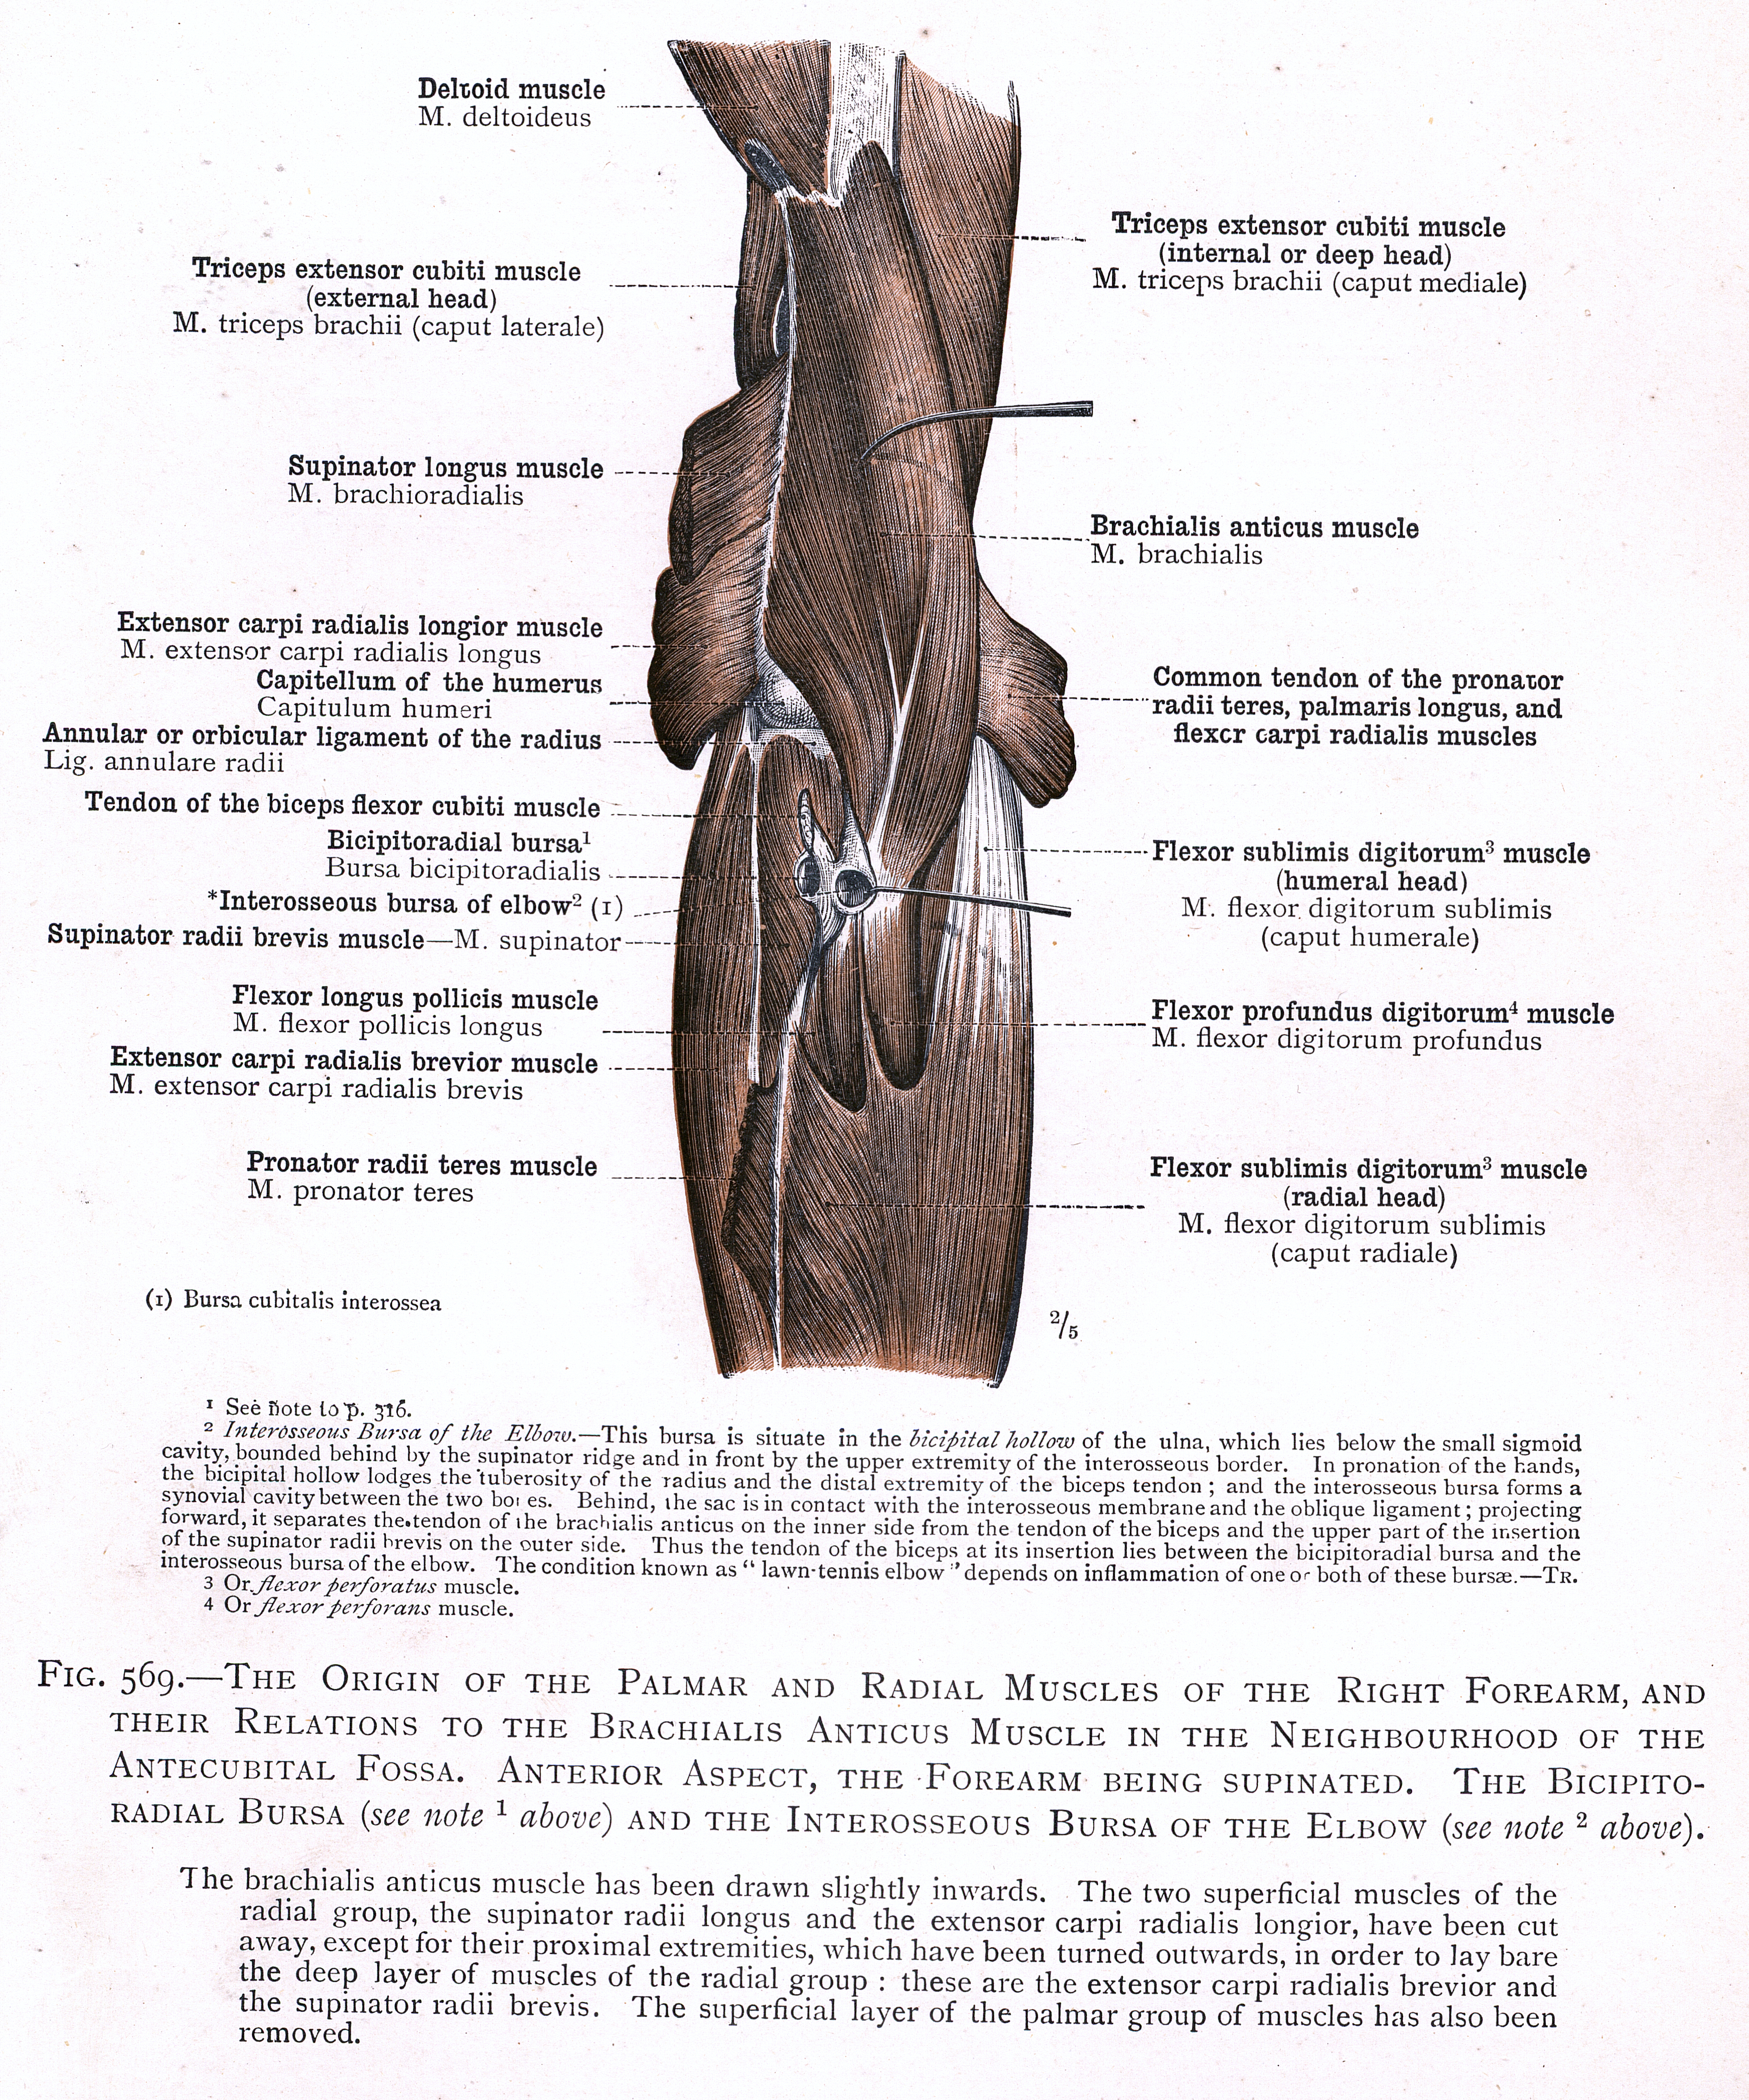 569. The origin of the palmar and radial muscles of the right forearm